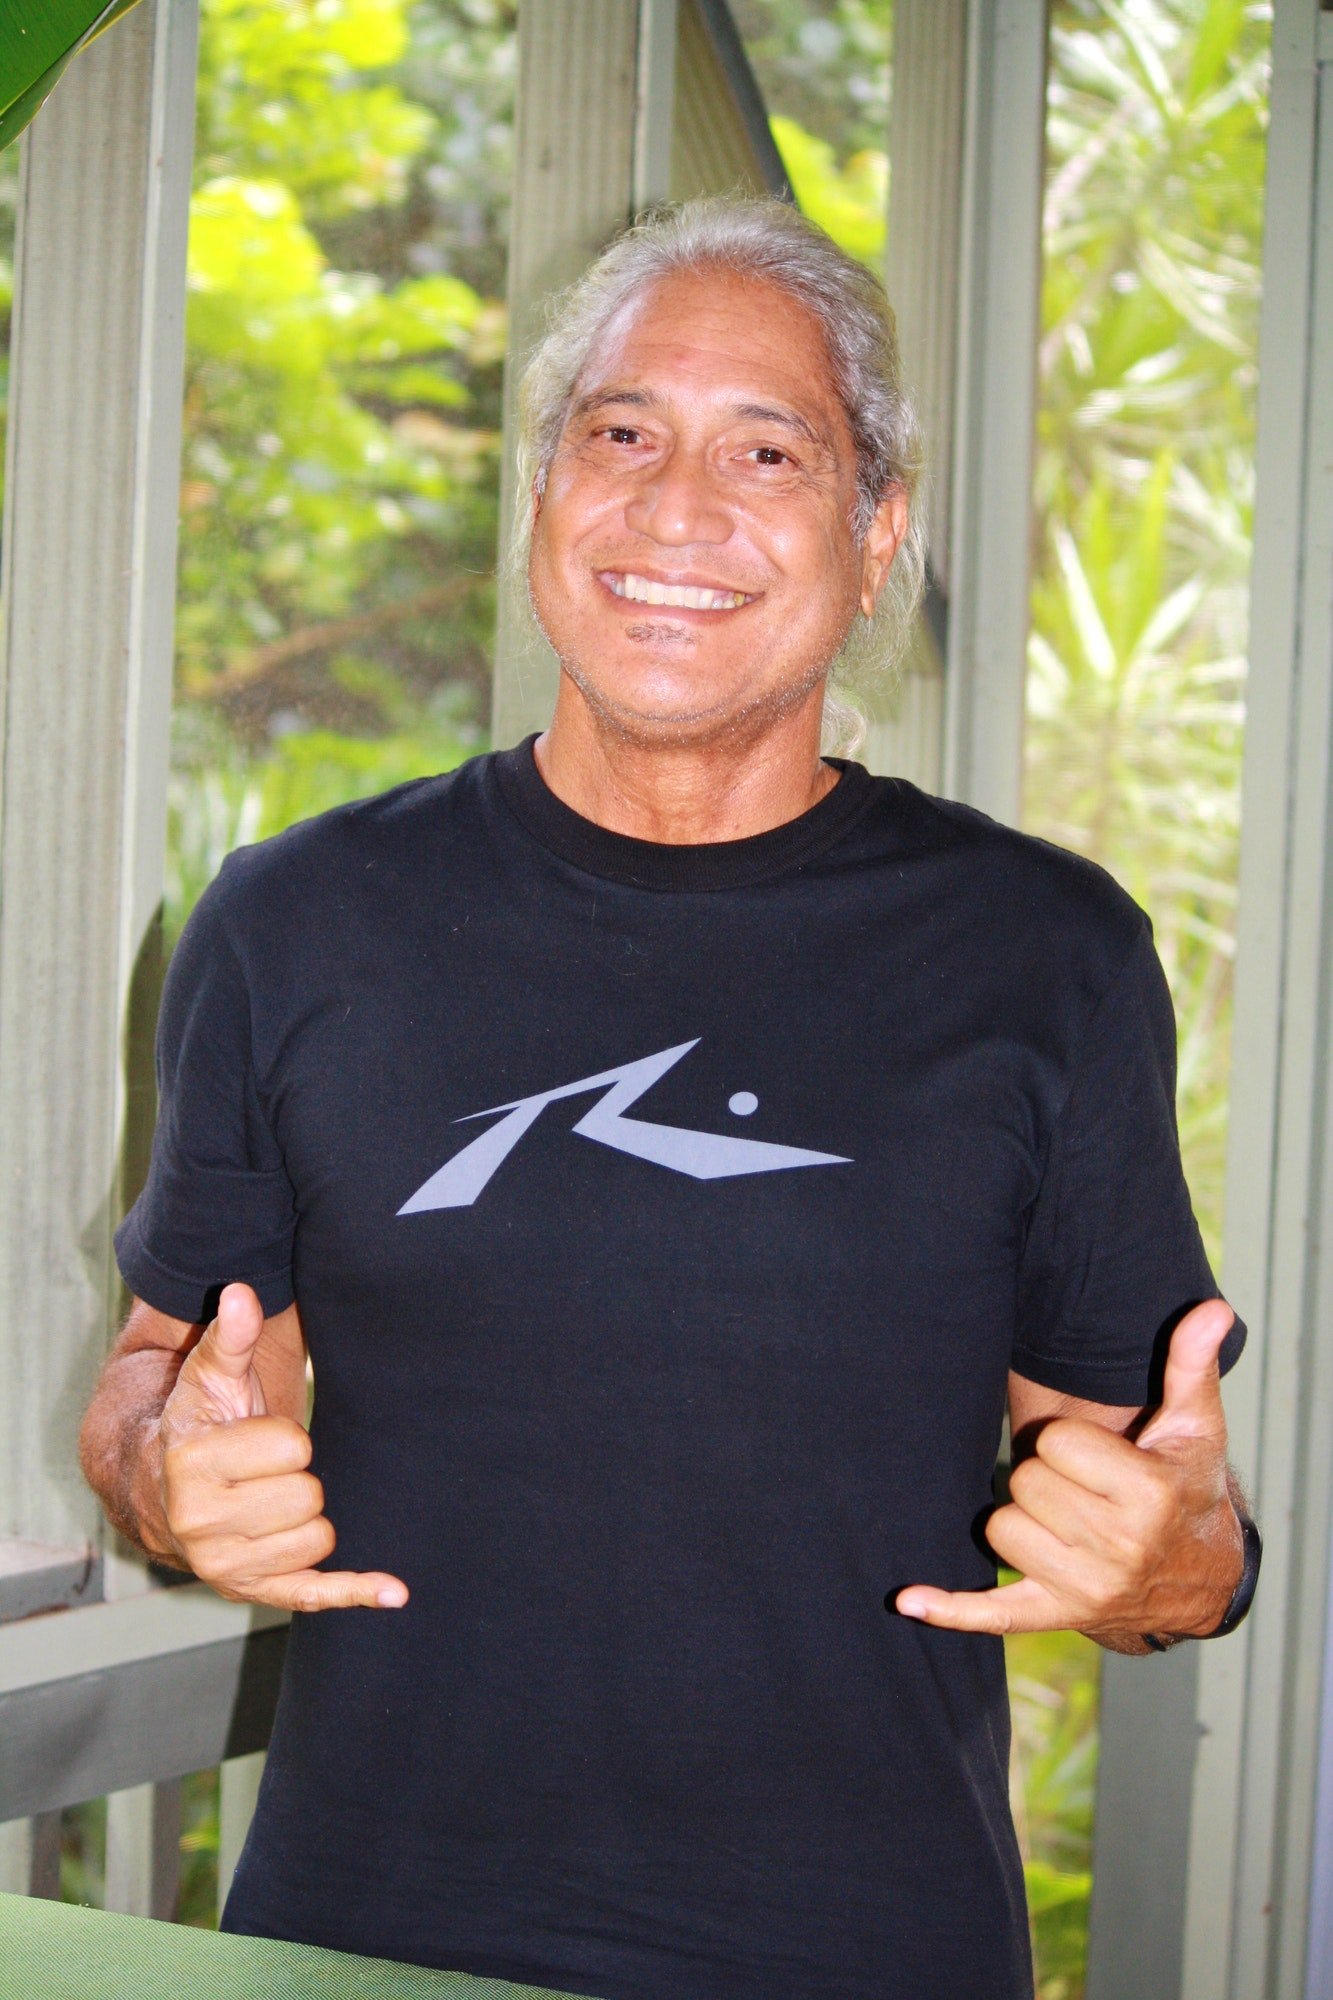 Clifford K. teaches tennis lessons in Hilo, HI